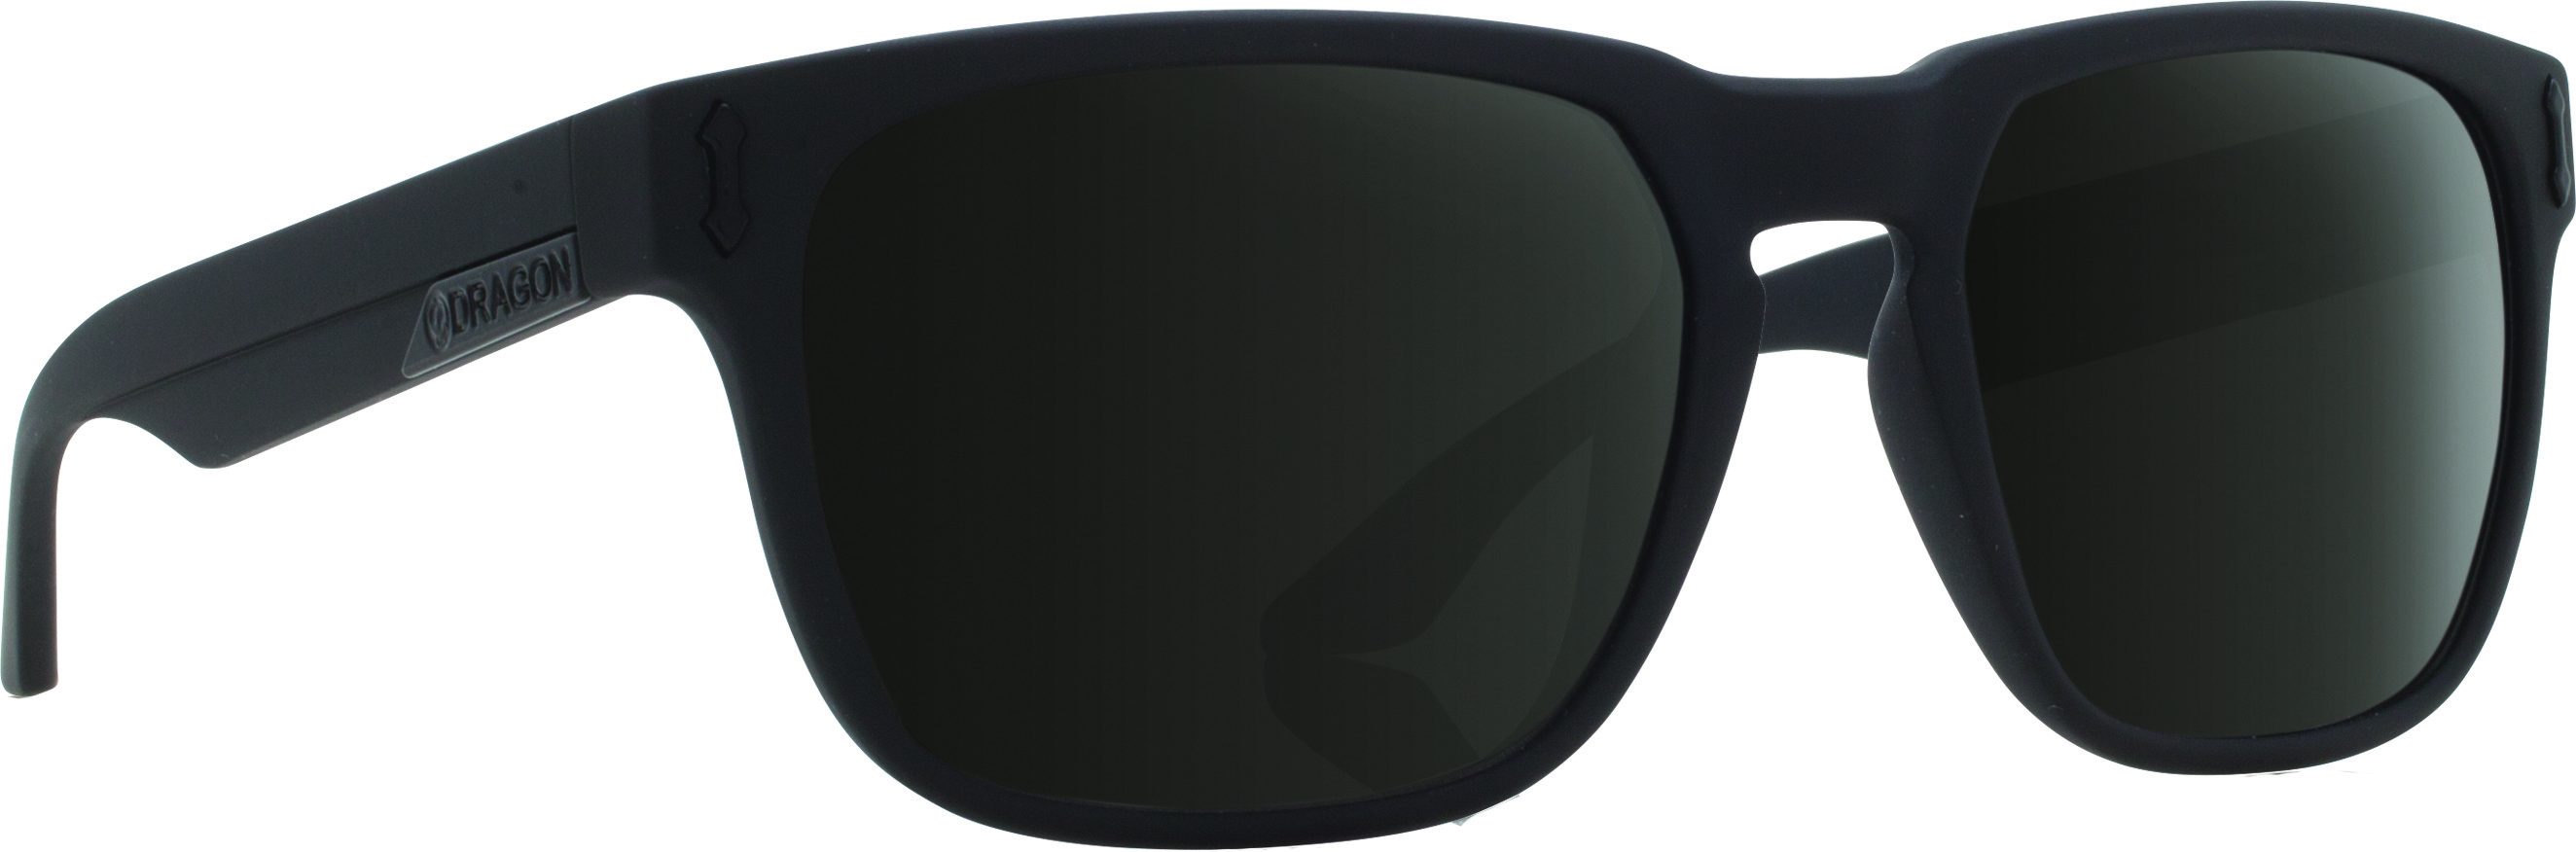 Monarch Sunglasses Matte Black W/Grey Lens